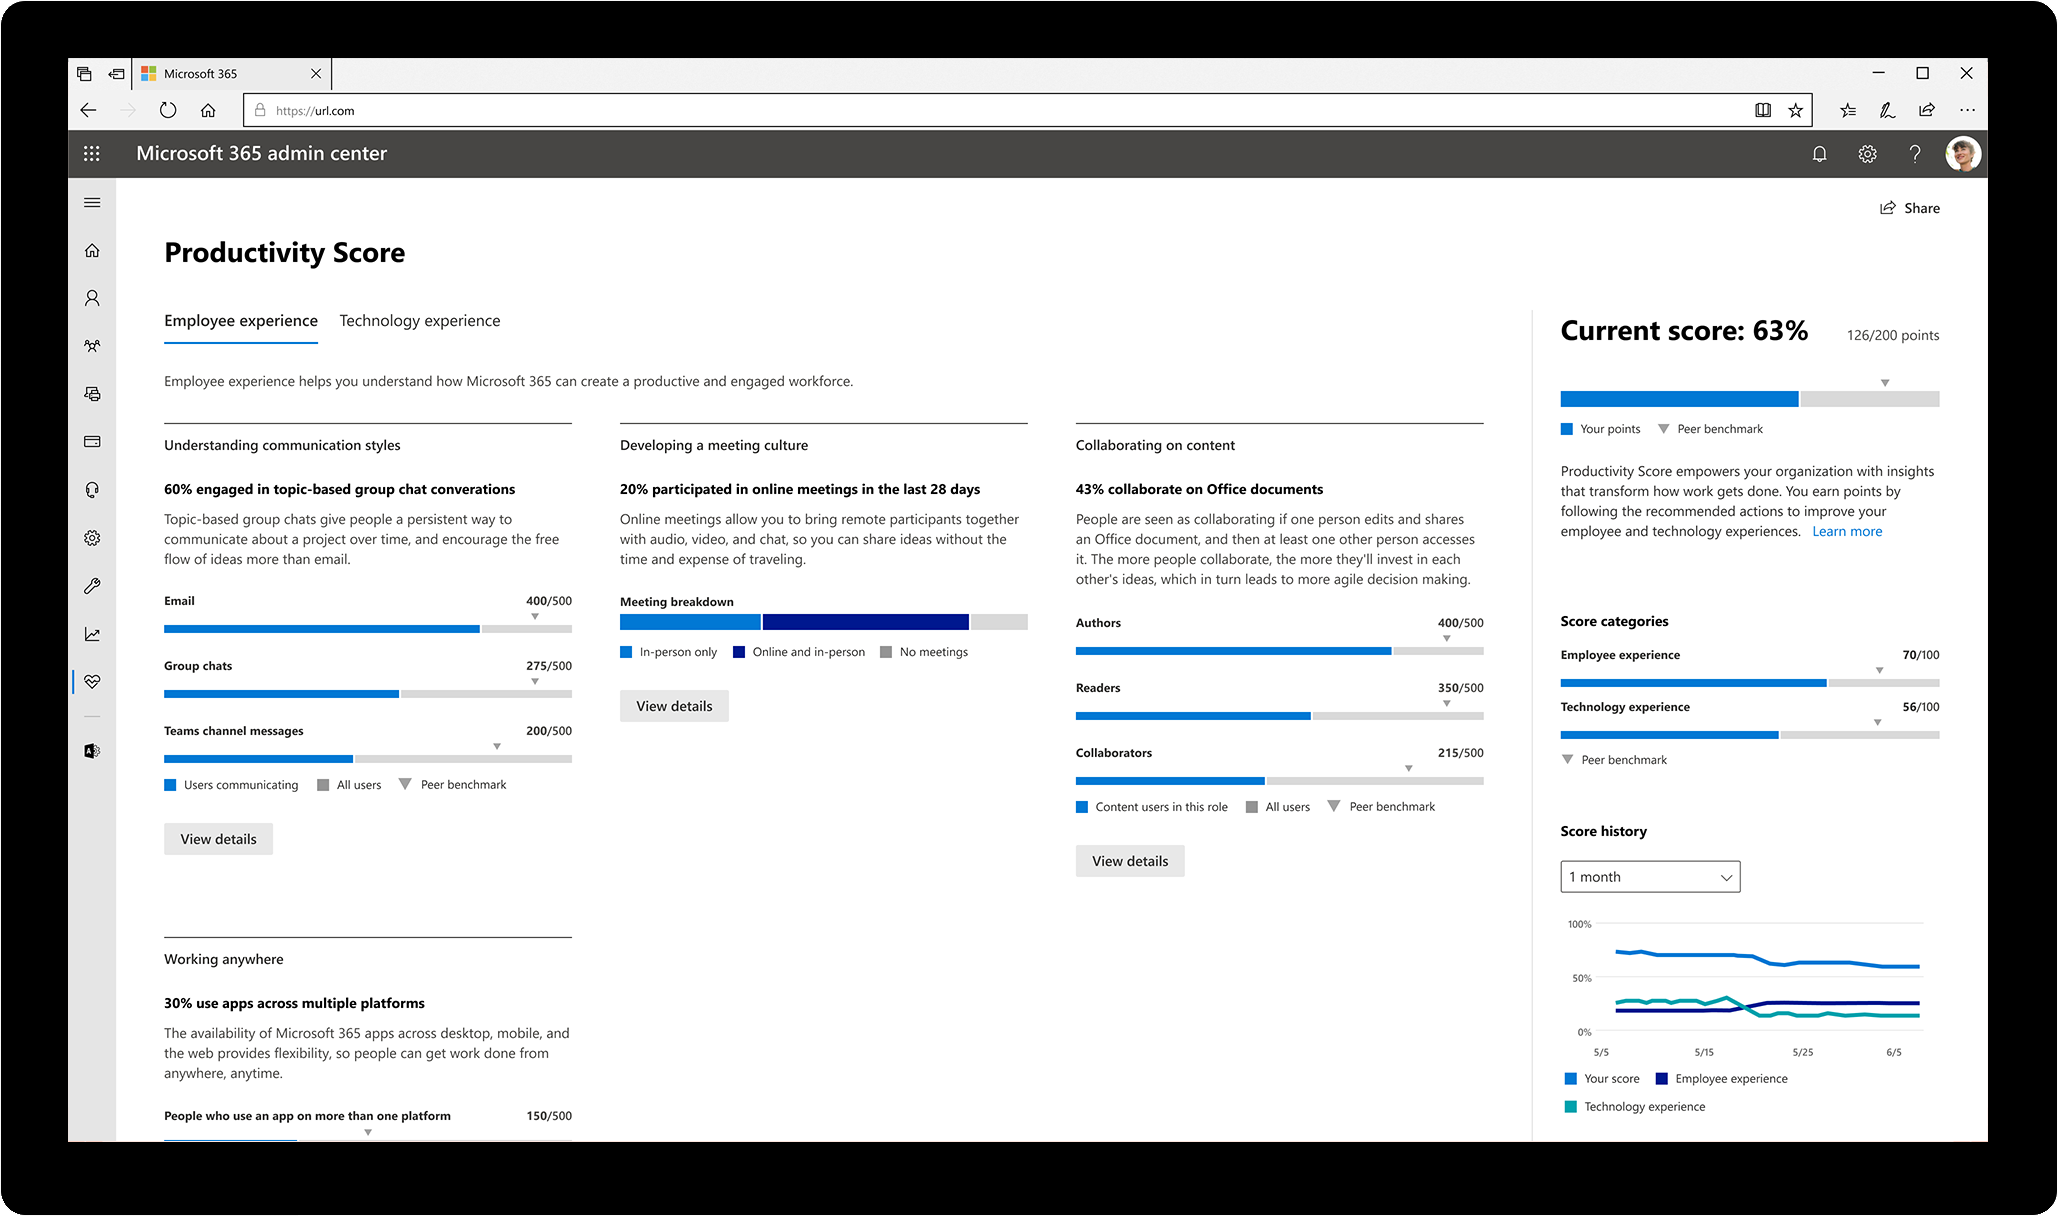 Screenshot of Productivity Score in the Microsoft 365 admin center.